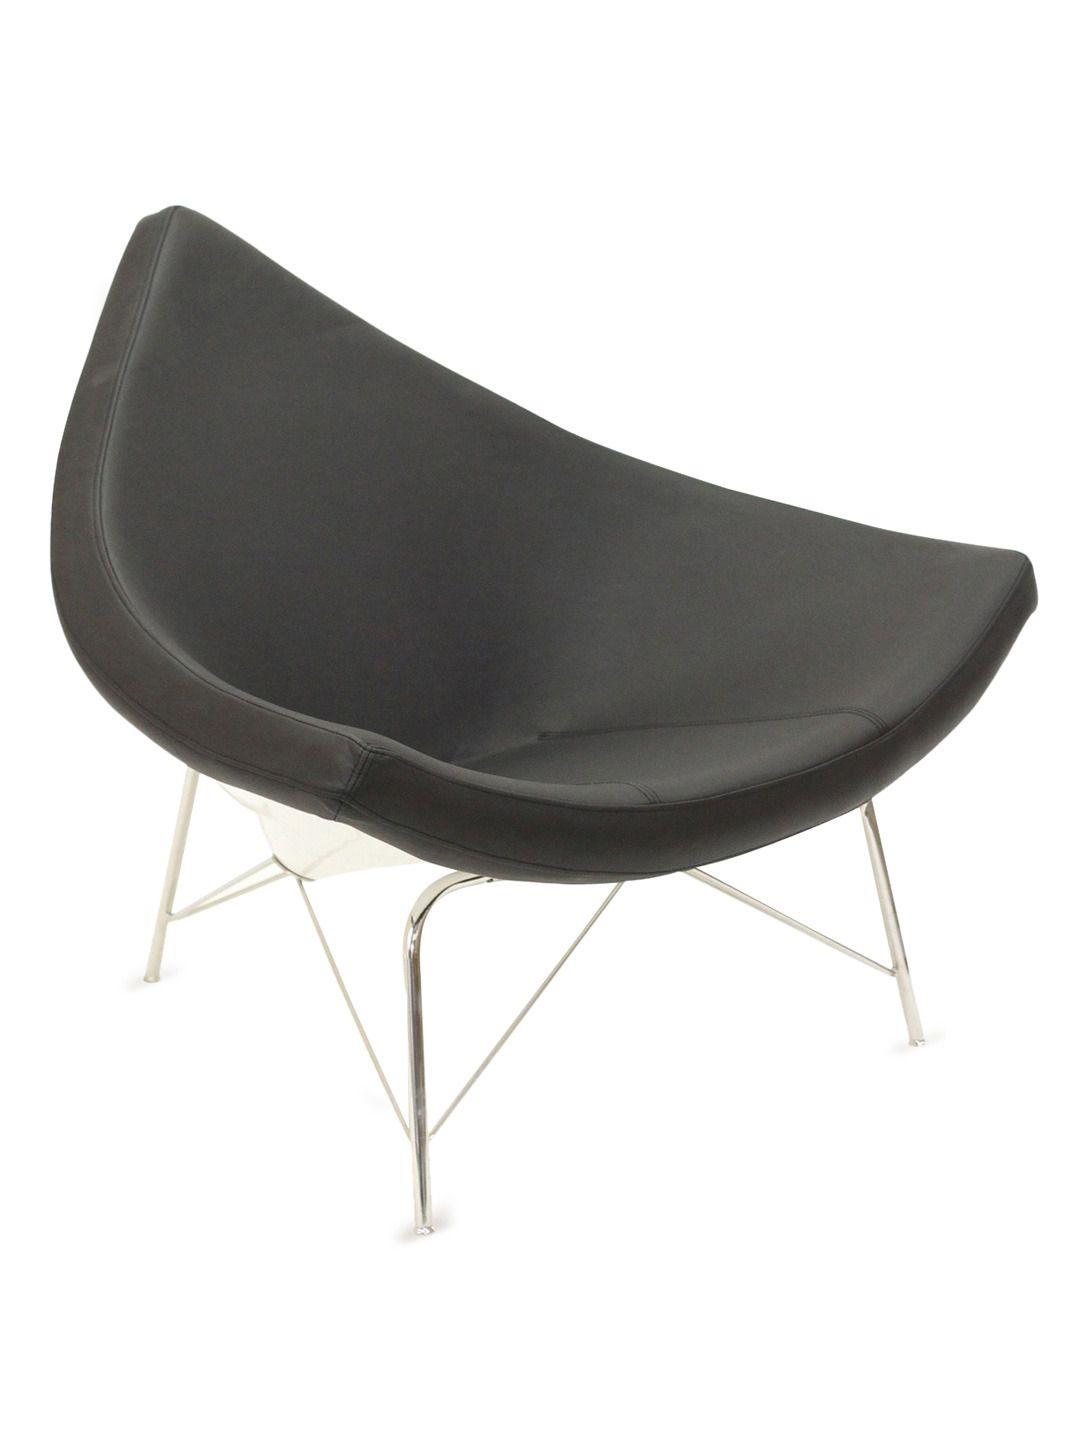 chinese hat chair by pearl river modern ny at gilt  living room  - chinese hat chair by pearl river modern ny at gilt